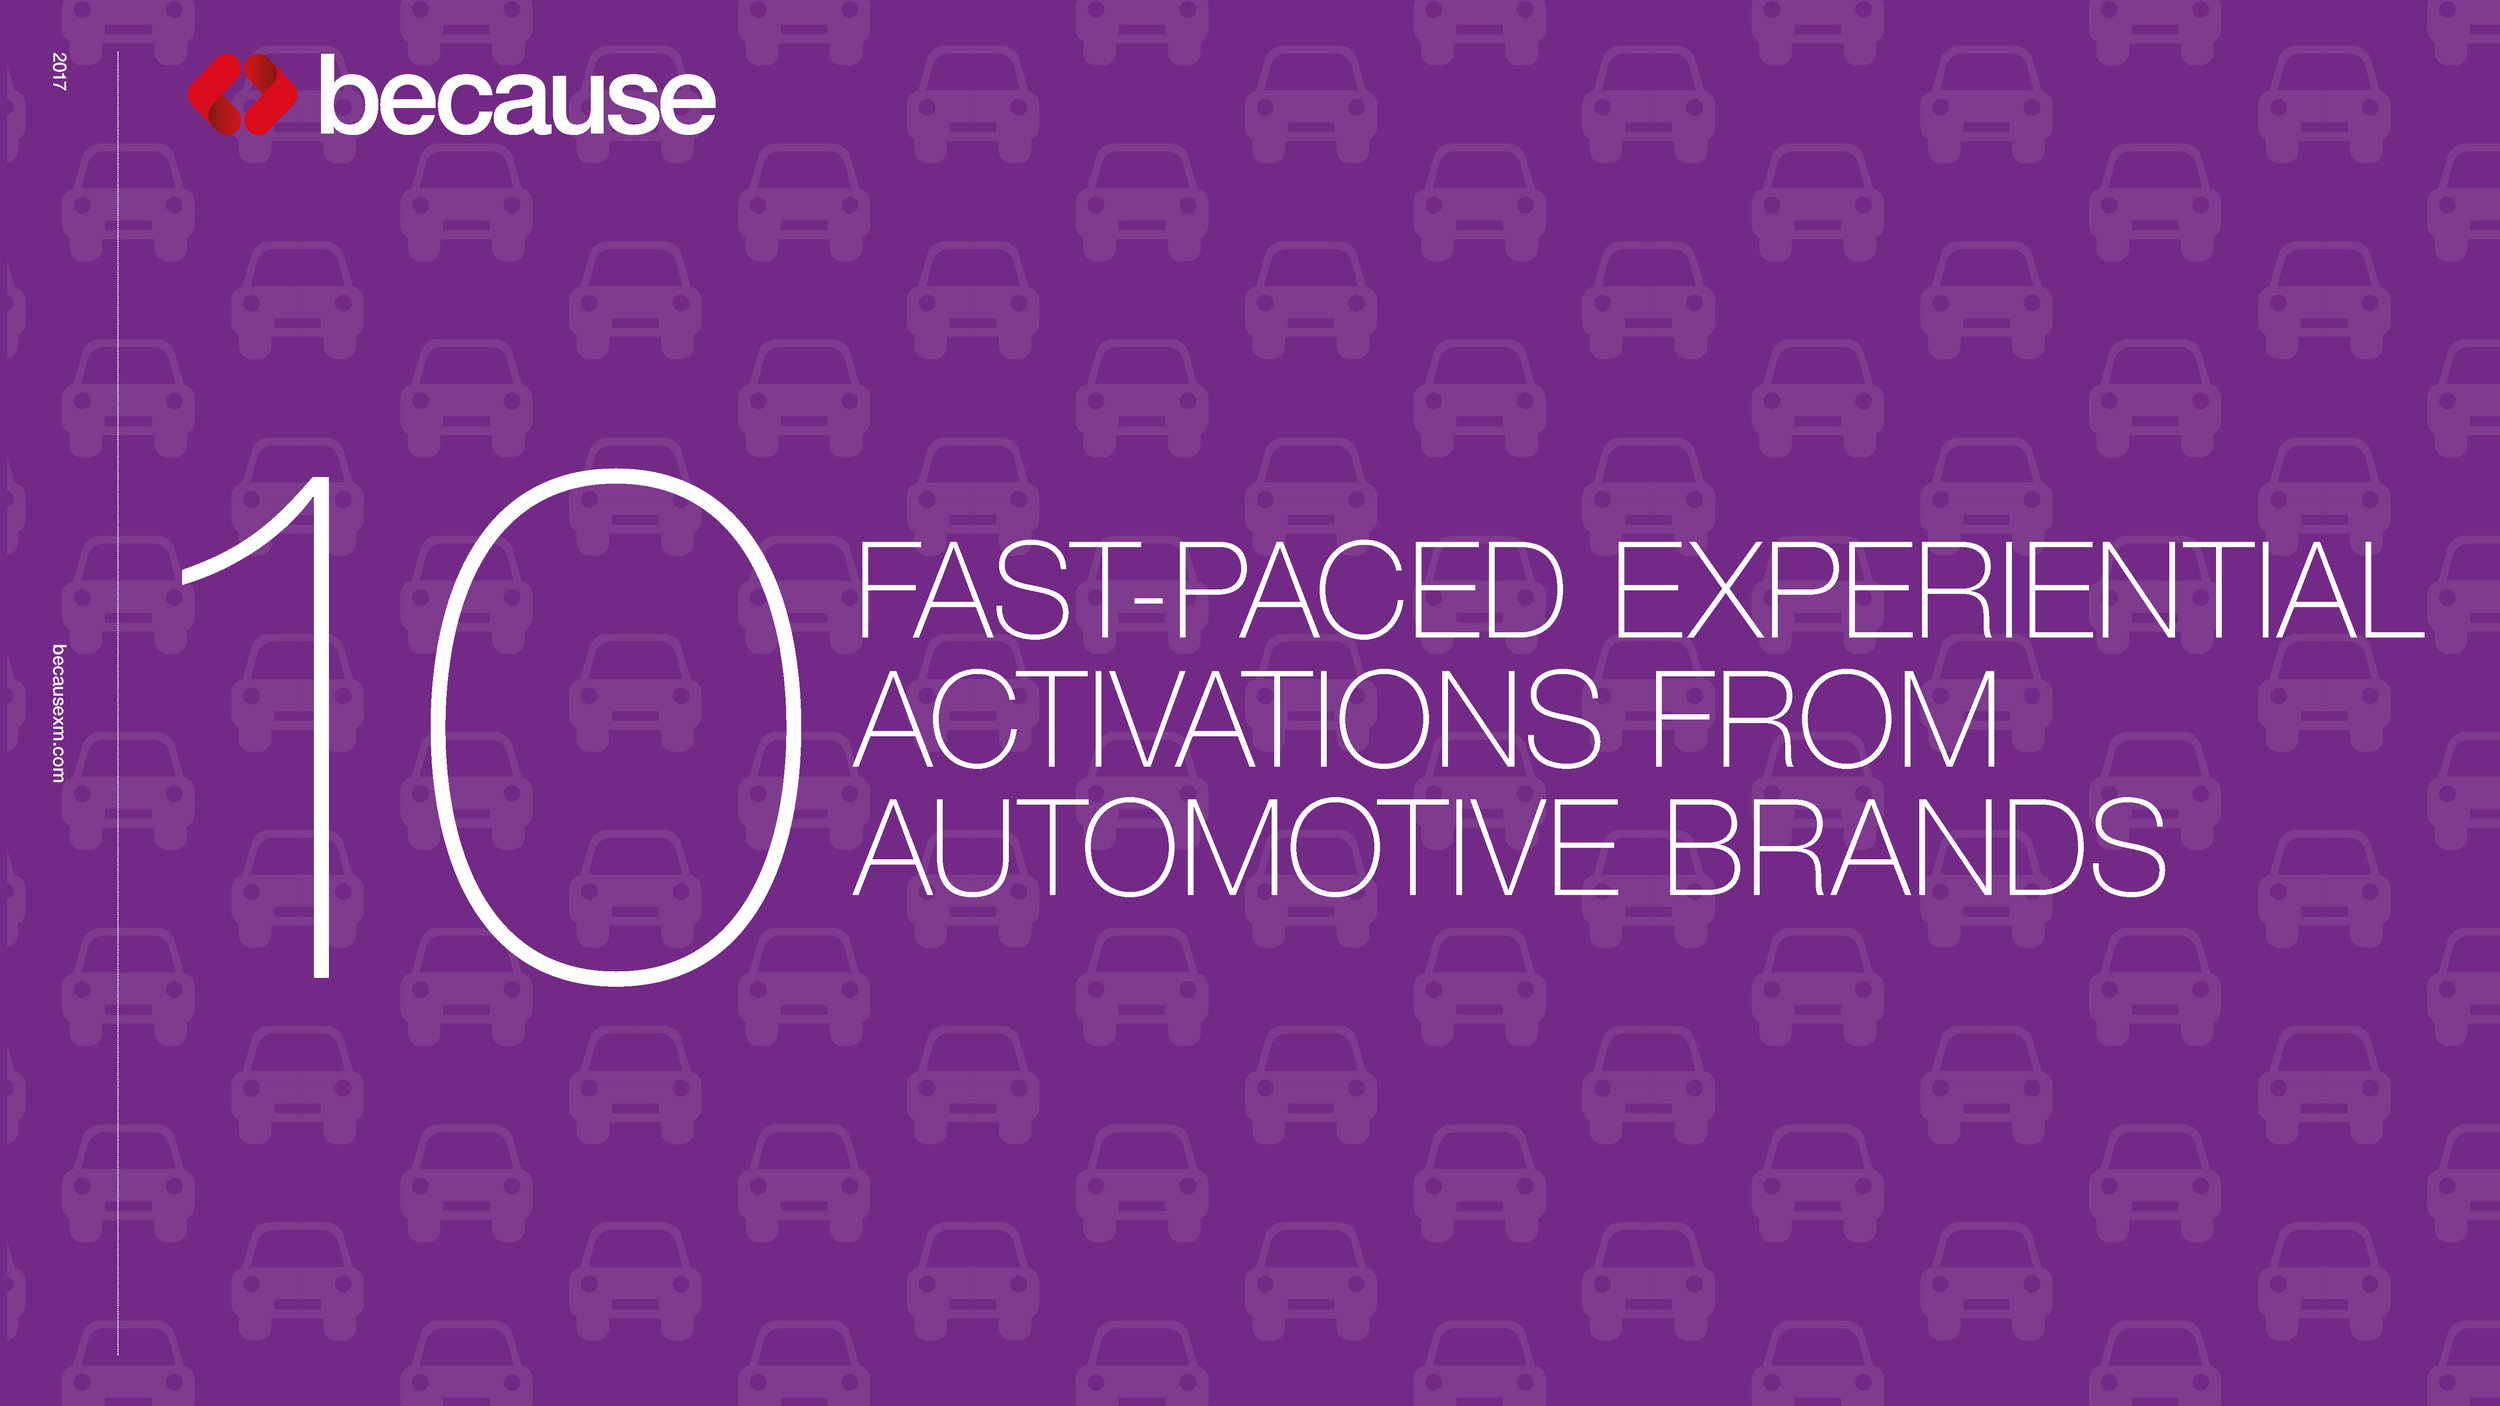 RKBecause_10_Best_Experiential_Campaigns_From_Auto_Brands_UK_Page_1.jpg